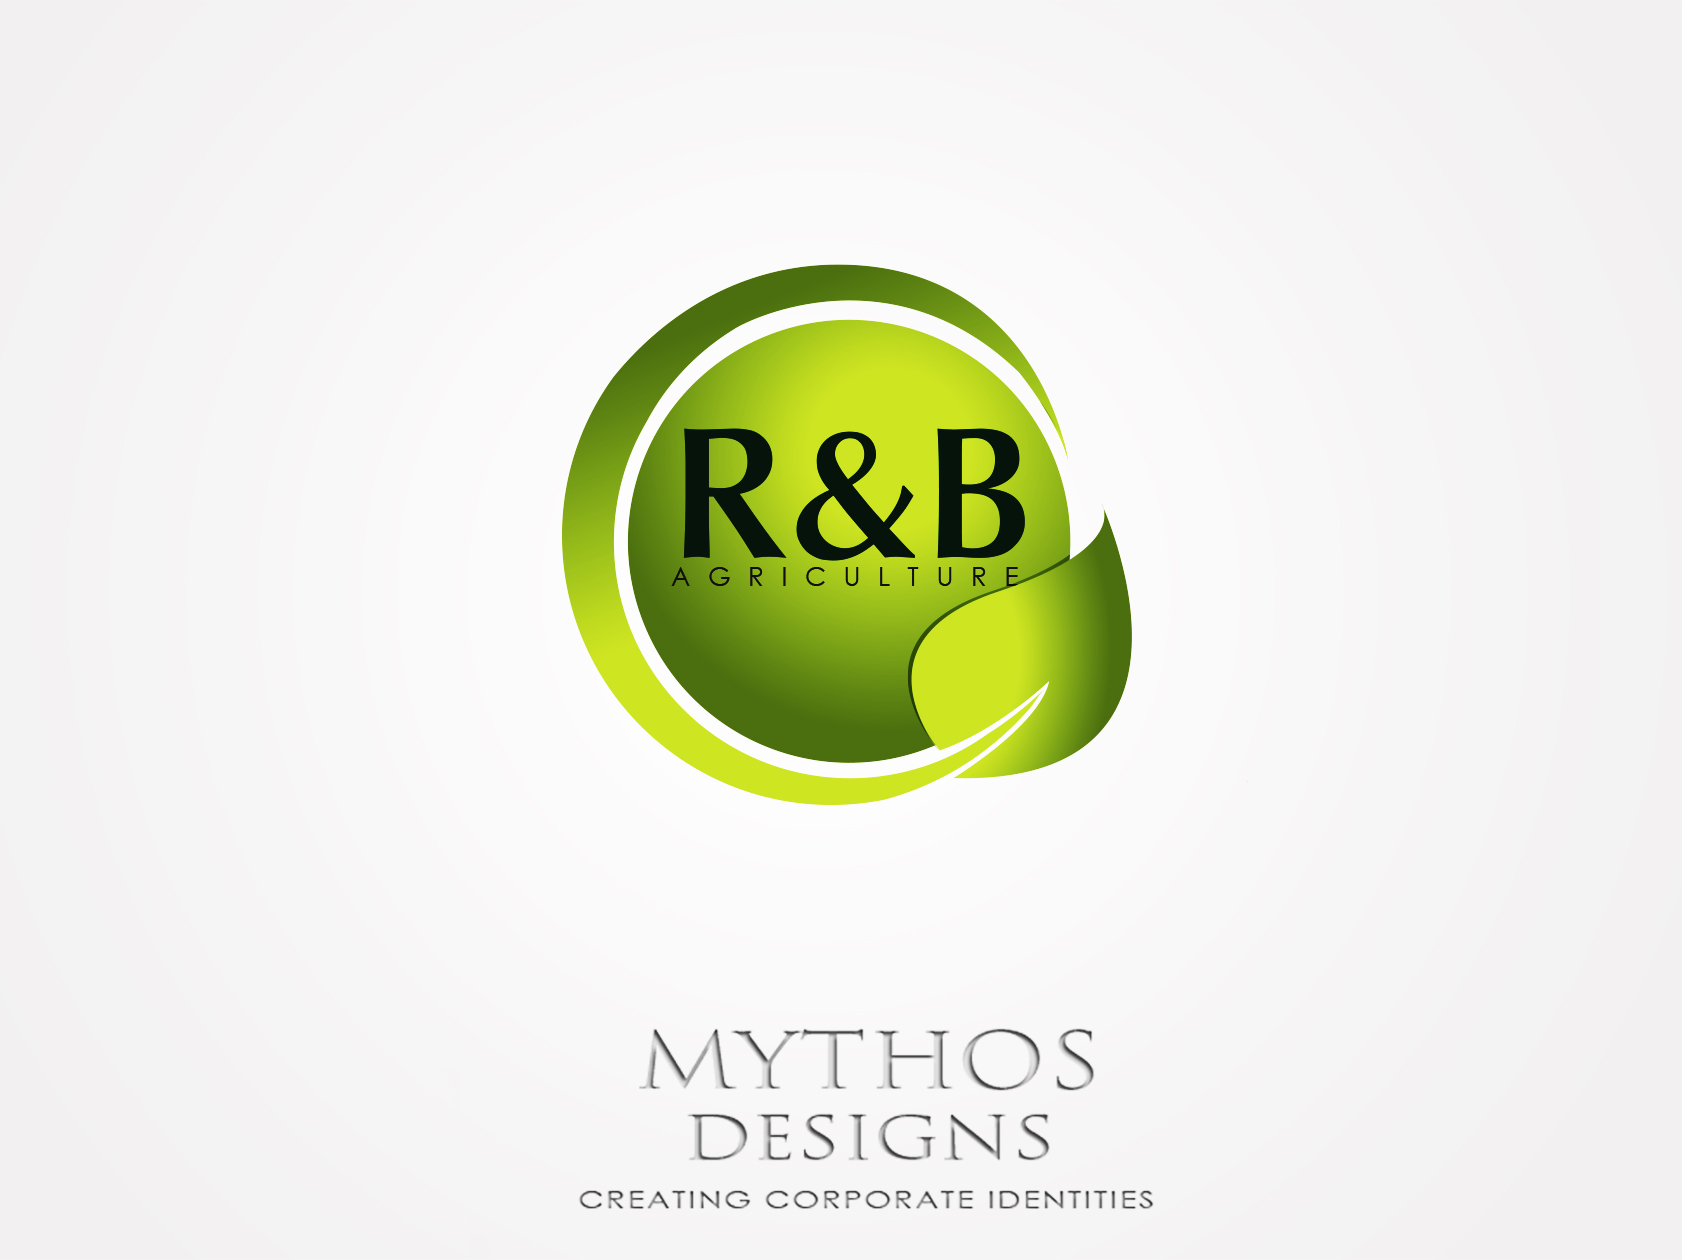 Logo Design by Mythos Designs - Entry No. 138 in the Logo Design Contest Captivating Logo Design for R & B Agriculture.